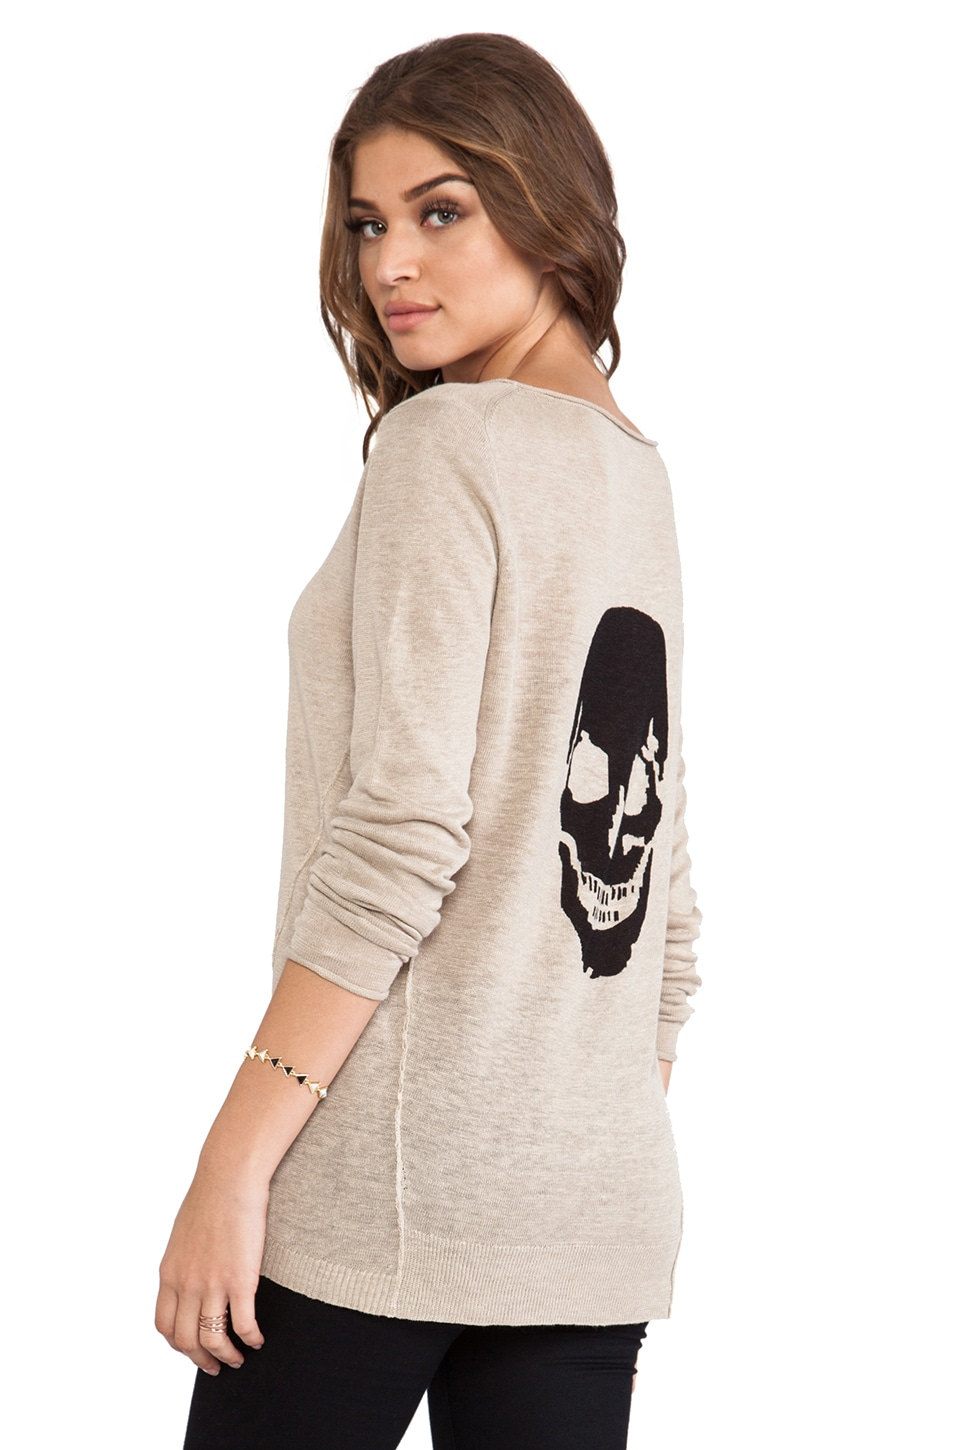 360 Sweater Big Luther Sweater in Stone & Black Skull Print